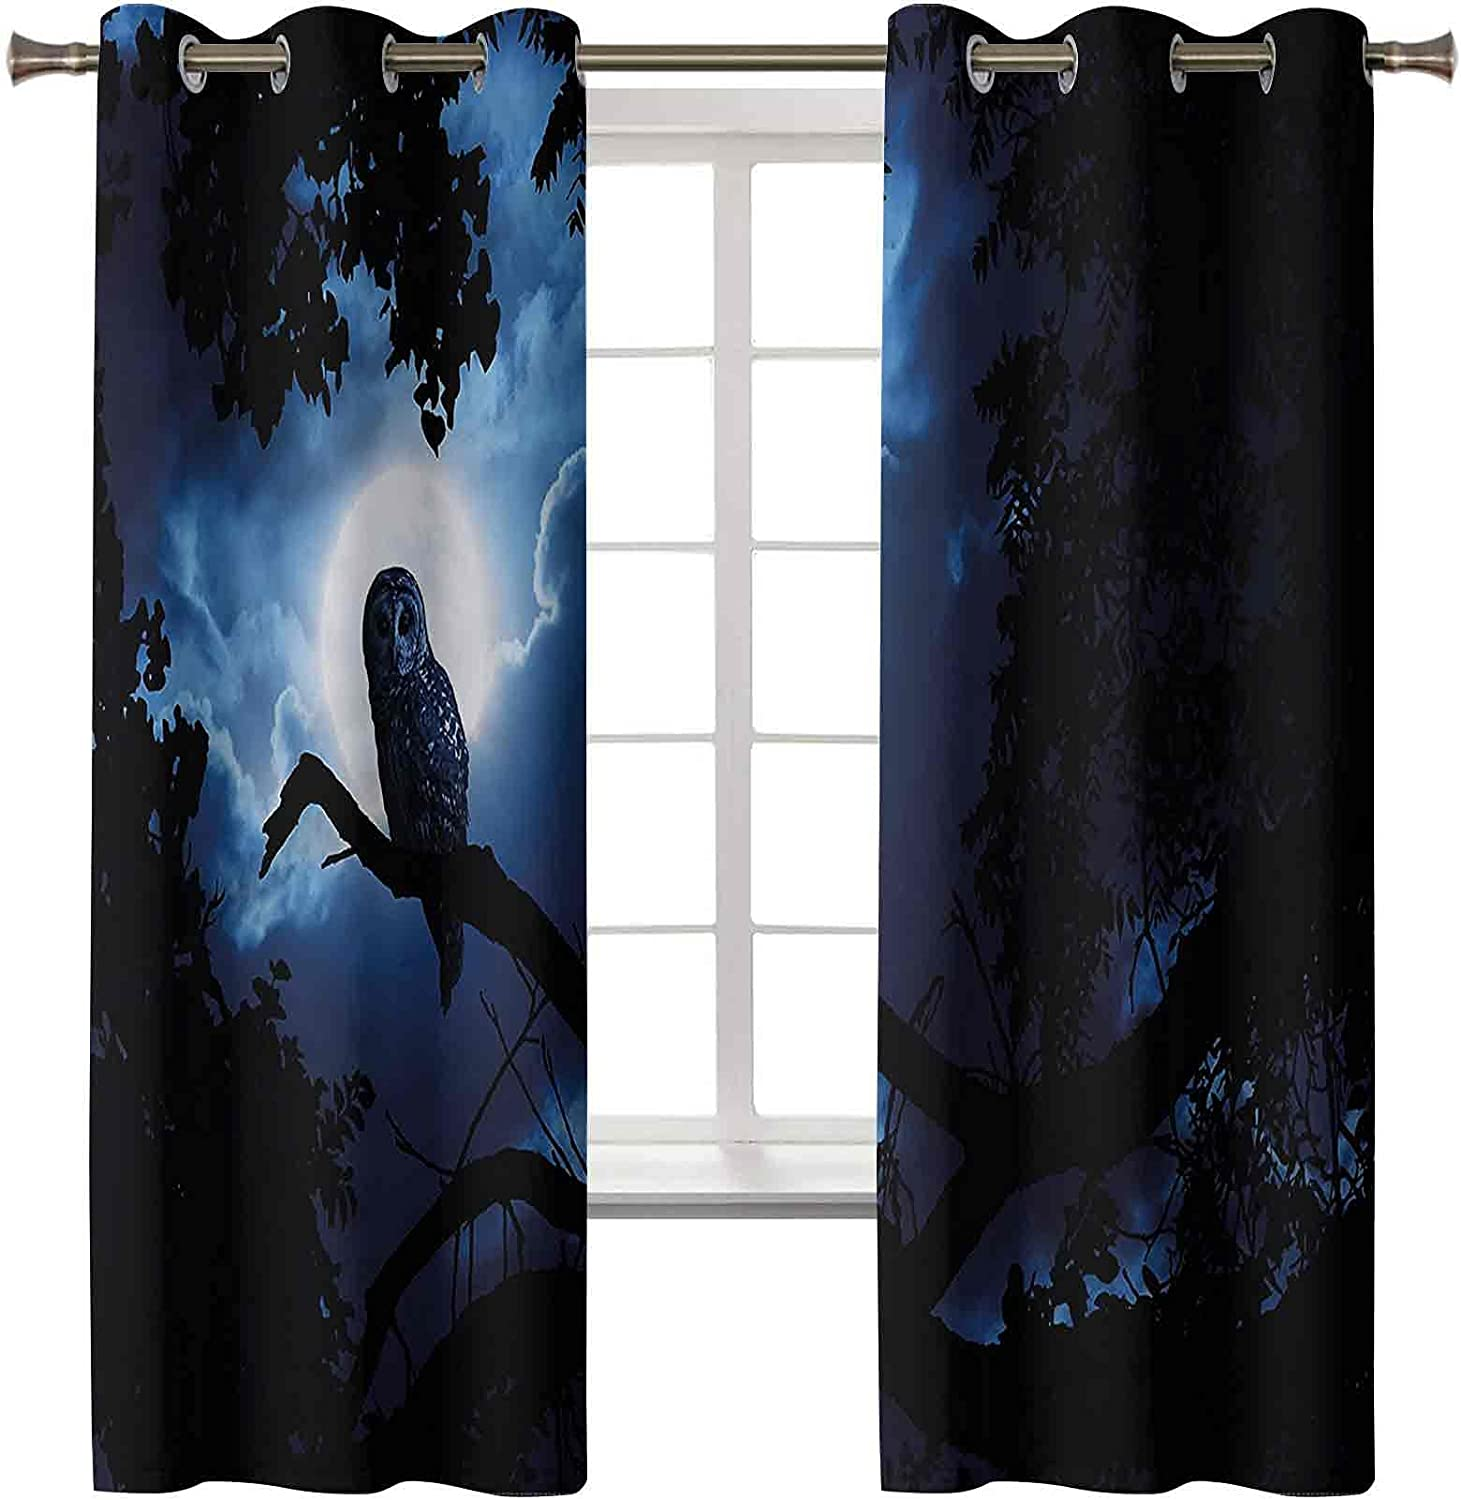 Blackout Curtains Grommet Thermal Special sale item Insulated Woodlan service Quite Night